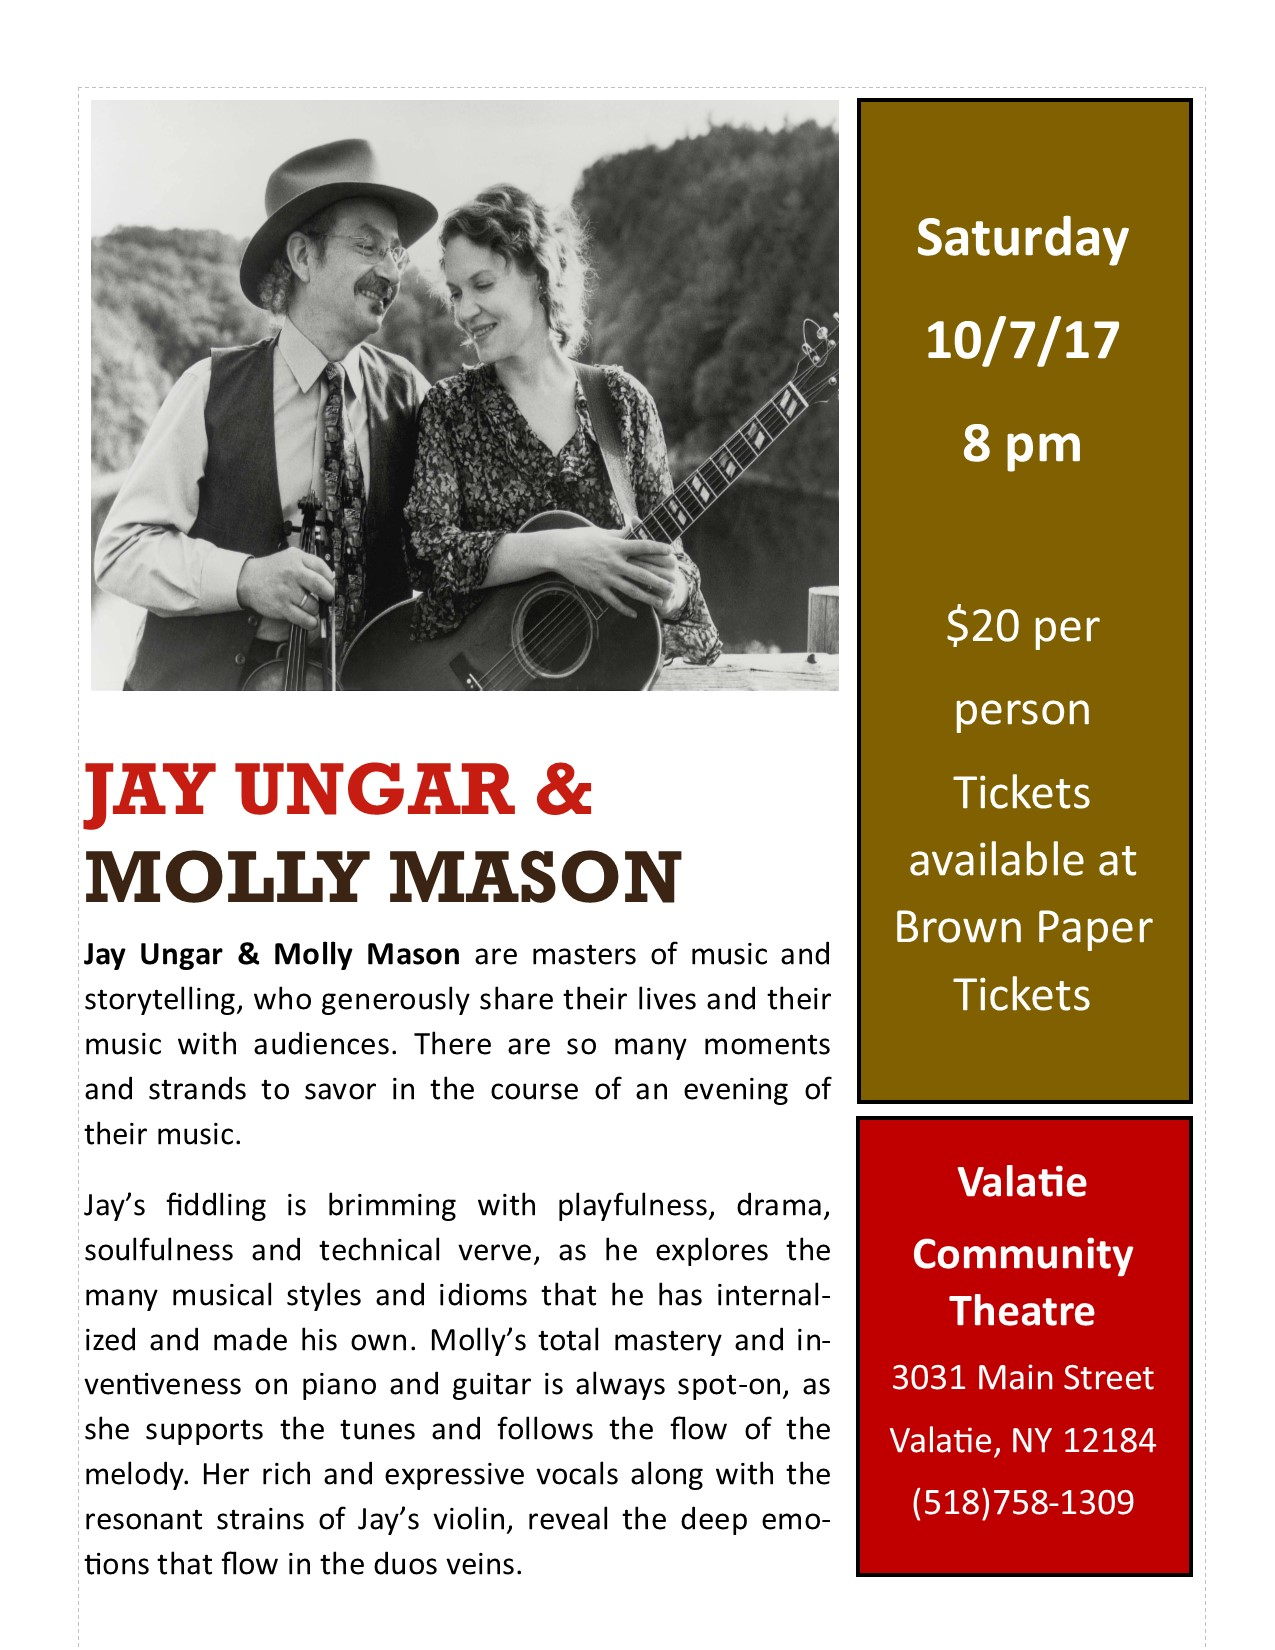 Jay Ungar and Molly Mason at the Valatie Community Theatre on October 8th, 2017